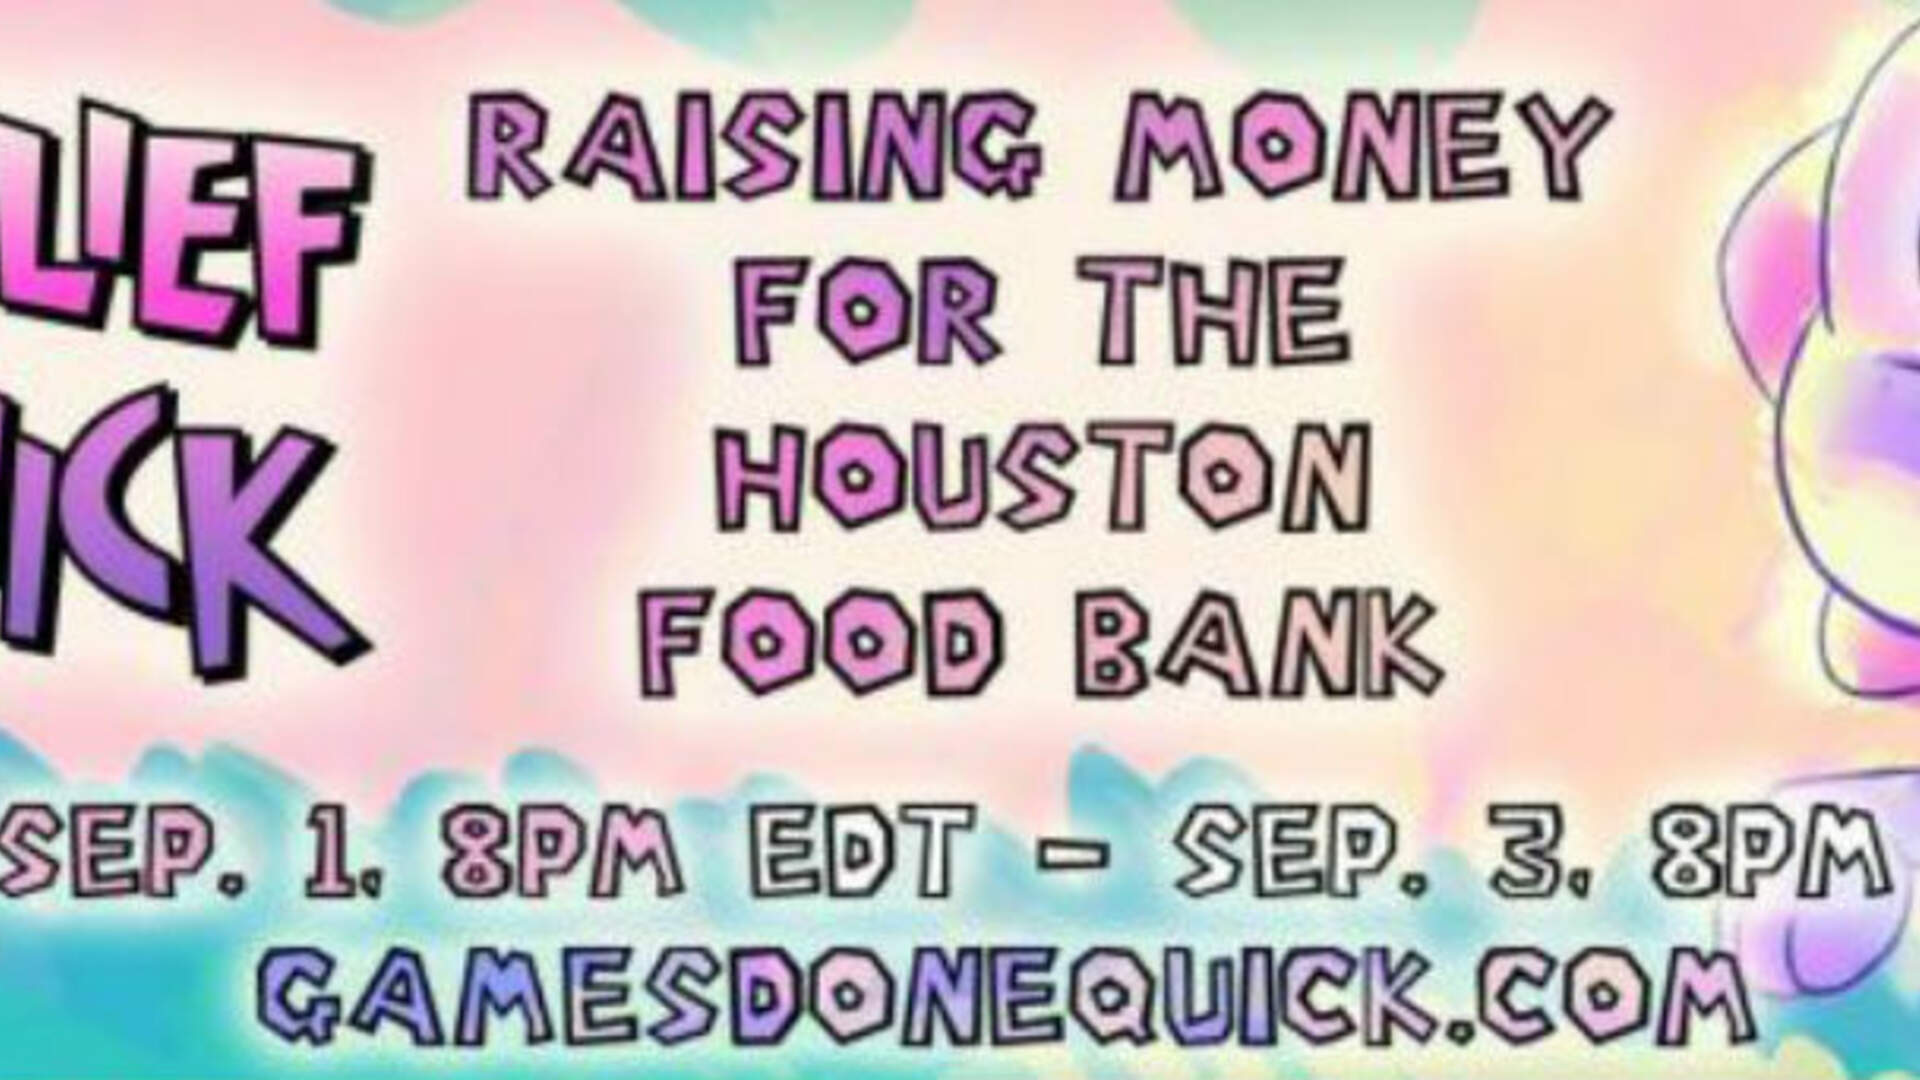 Games Done Quick Raises Lots of Cash for the Houston Food Bank